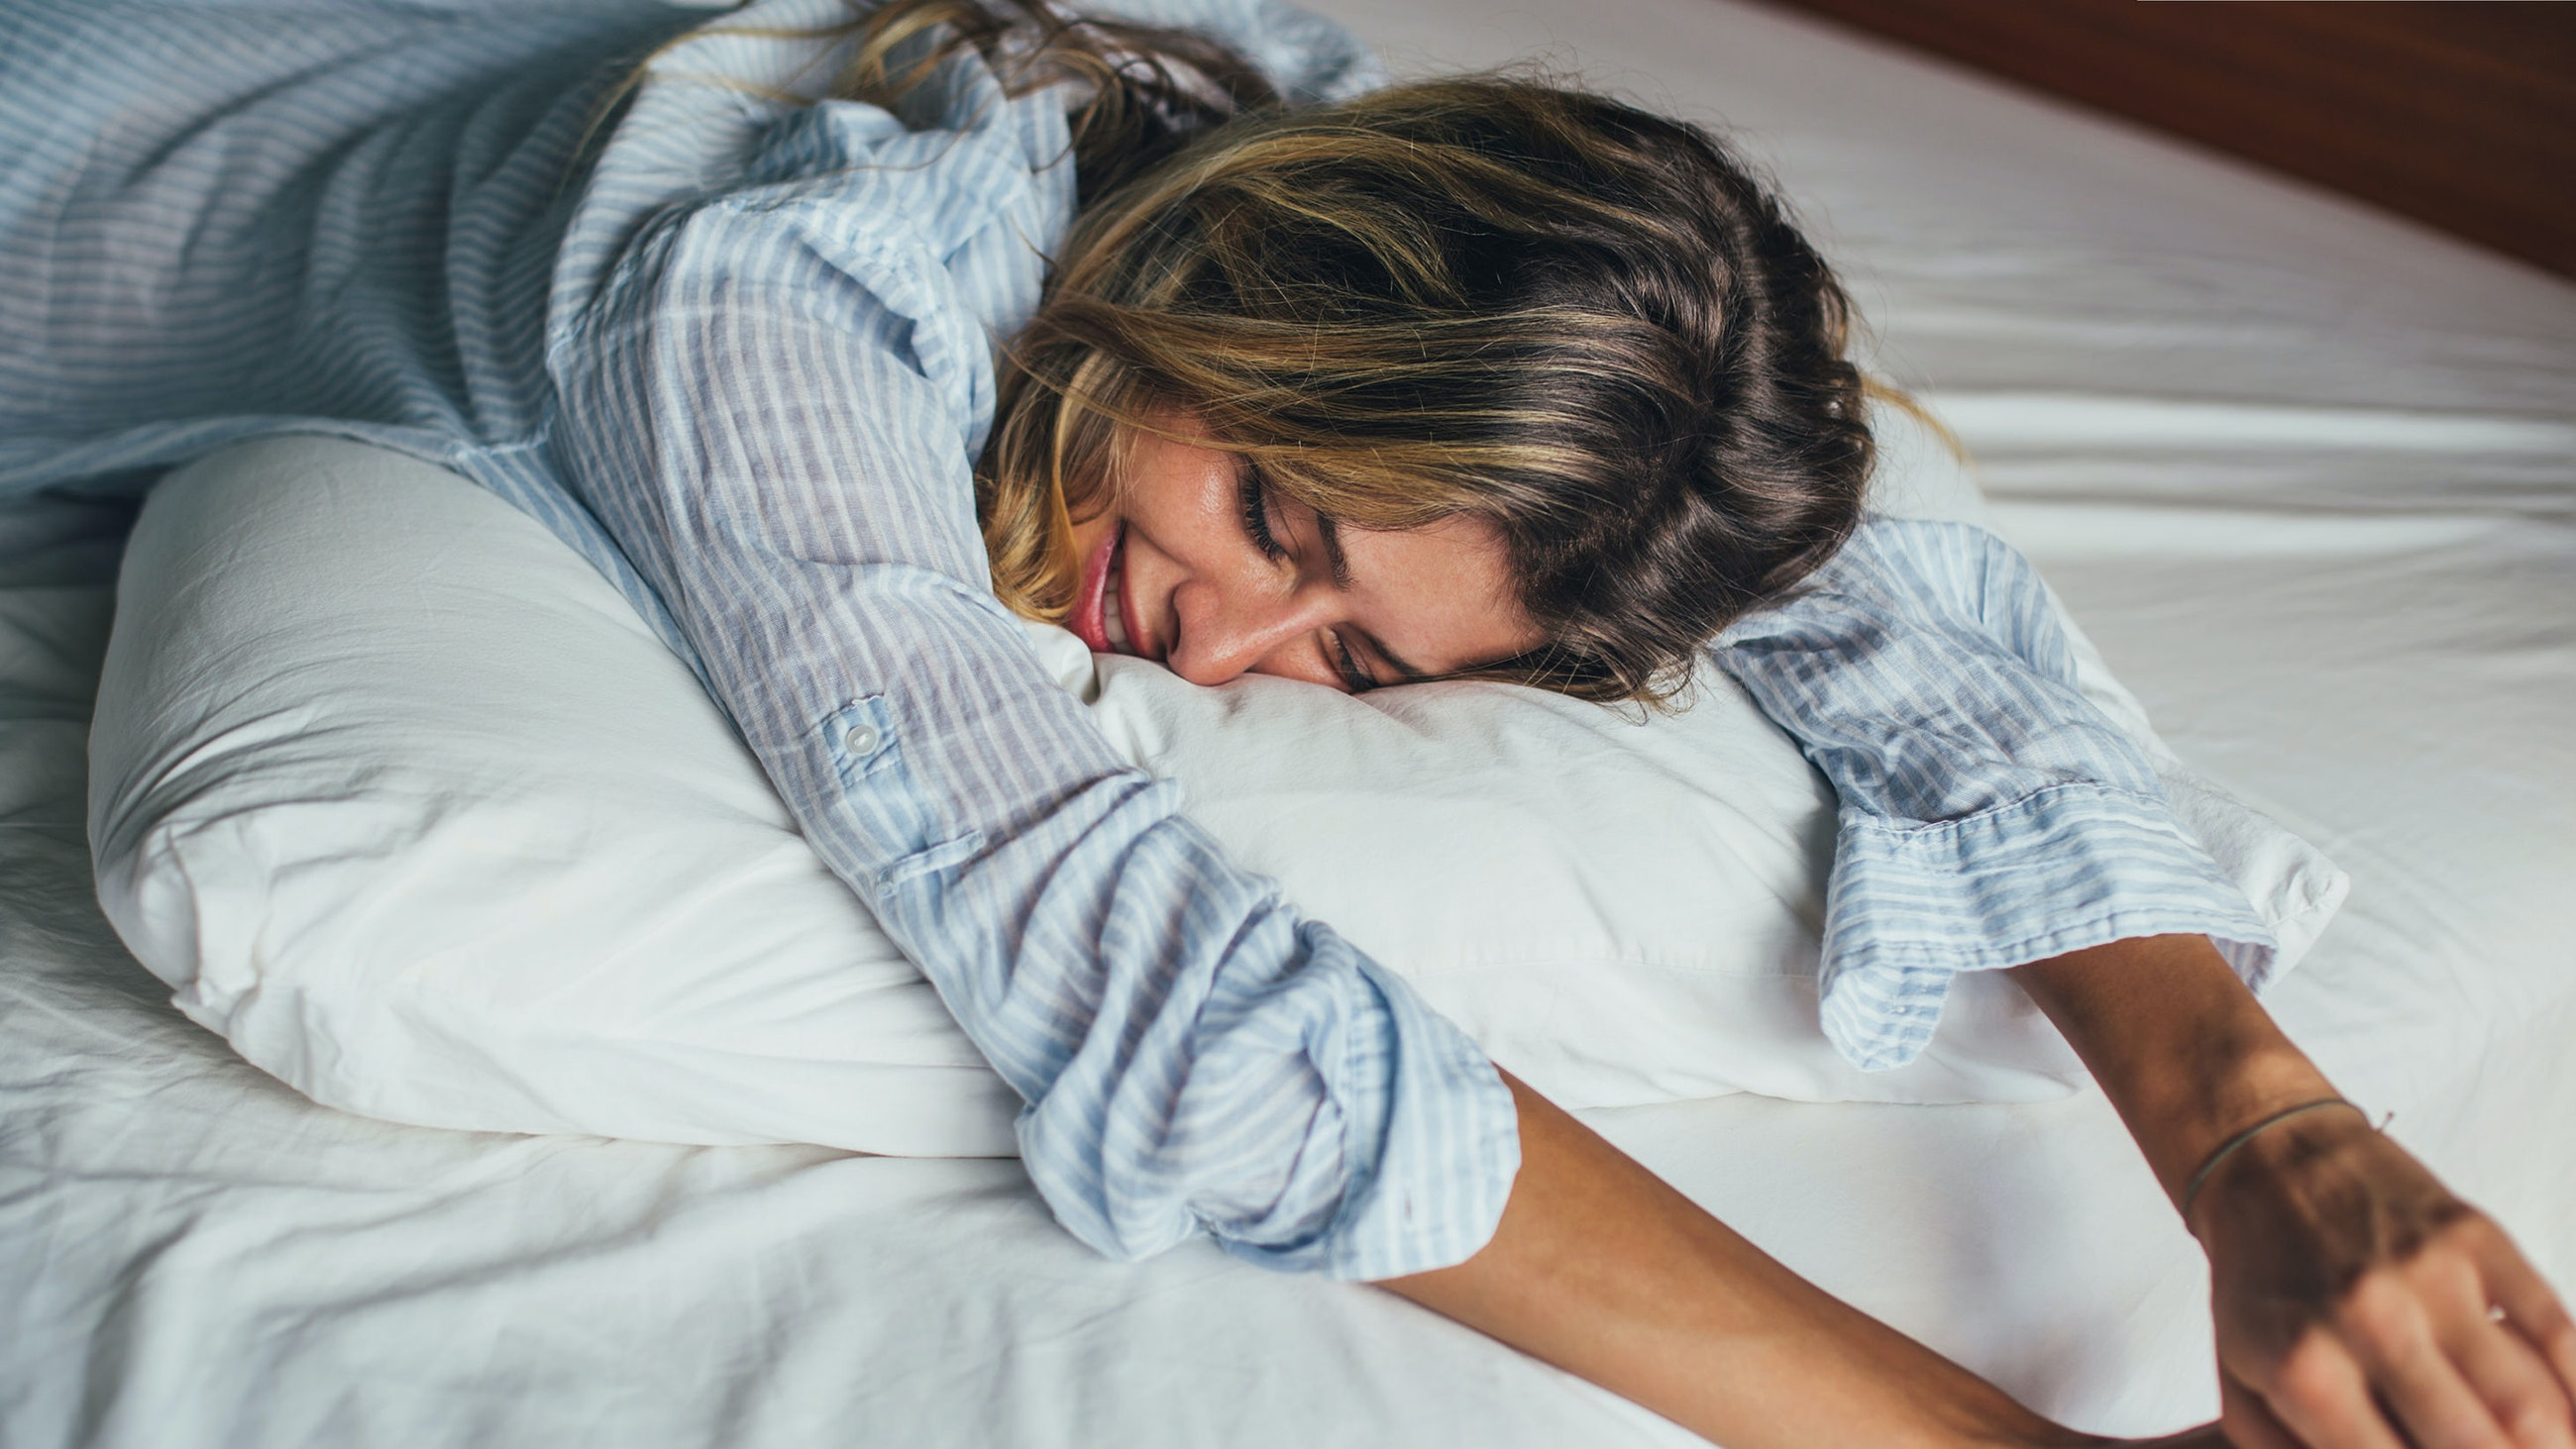 woman smiling on pillow